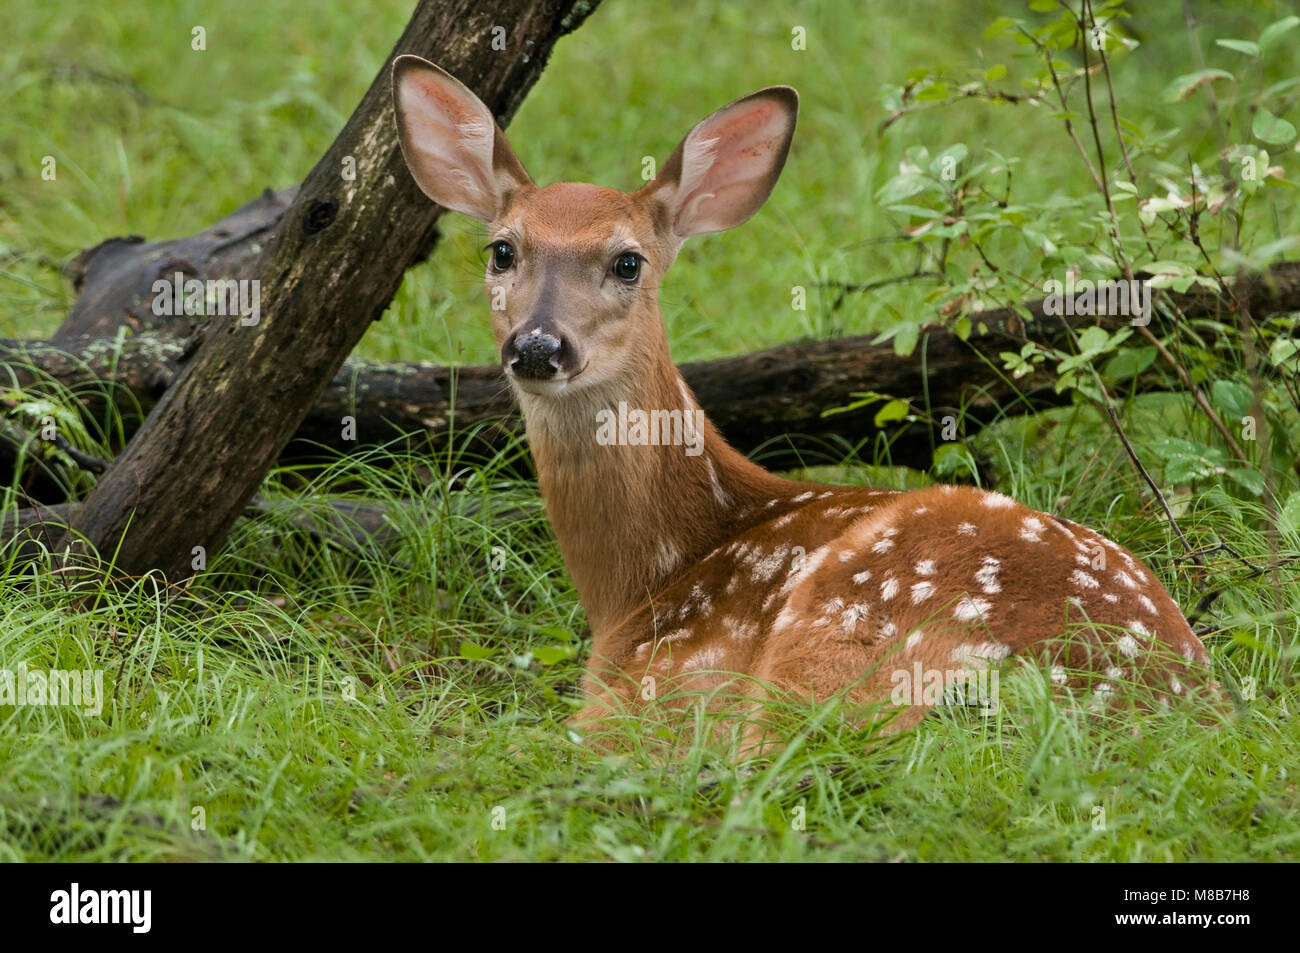 White-tailed Deer,(Odocoileus virginianus), Fawn, Spring, Eastern Deciduous forest, E USA, by Skip Moody/Dembinsky - Stock Image